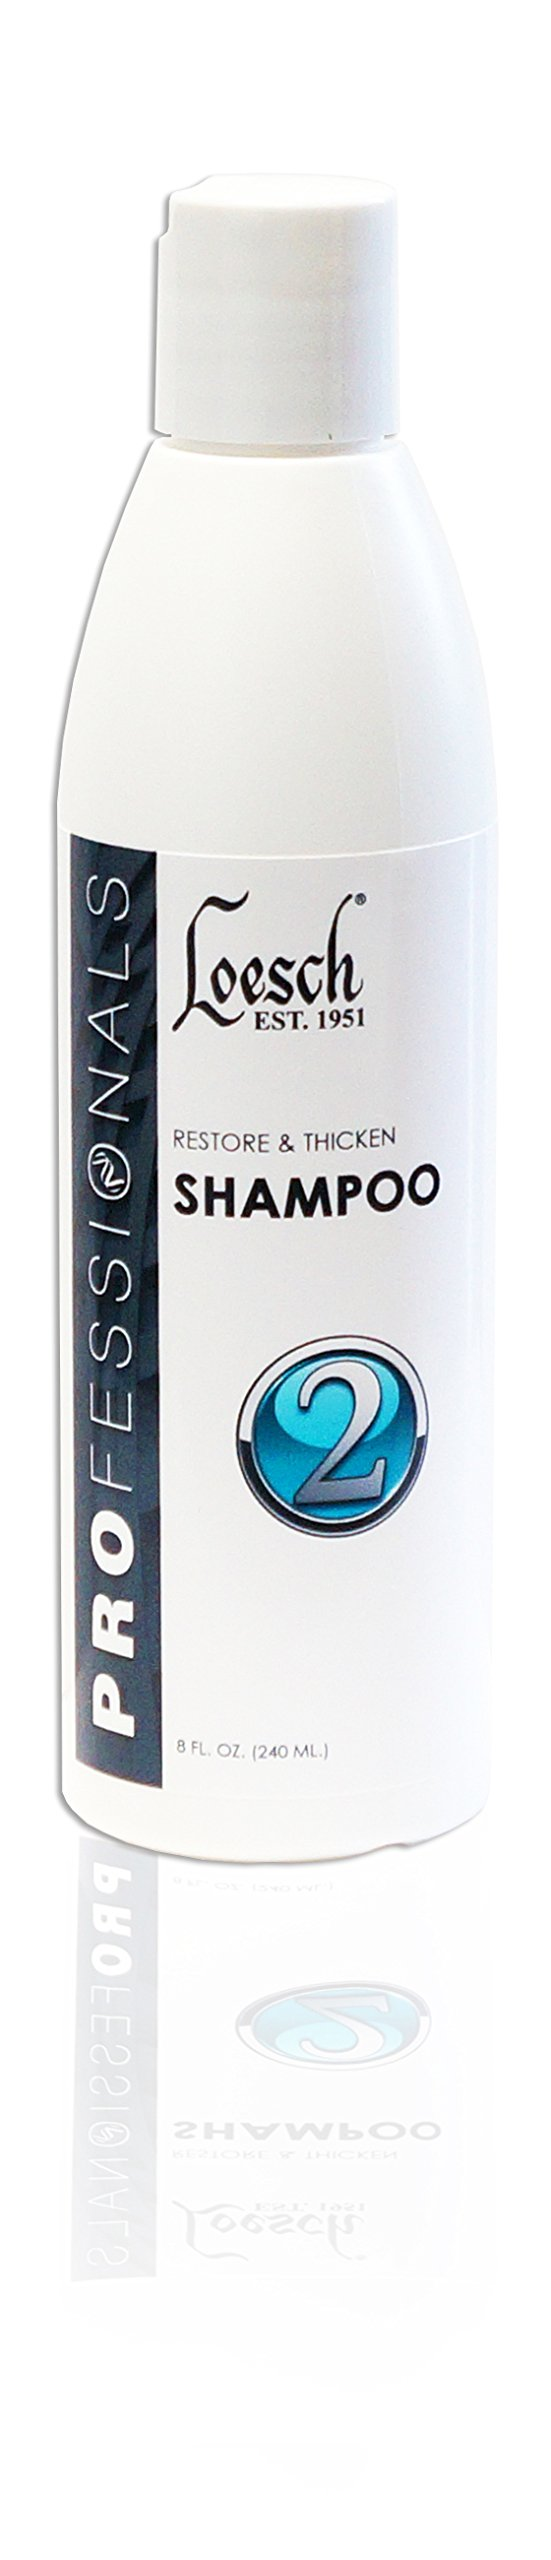 8 oz Loesch Professional Restore & Thicken Shampoo, four times stronger. Cleaning effects including removes scbaccous buildup and penetrates hair to condition and thickens hair shaft.